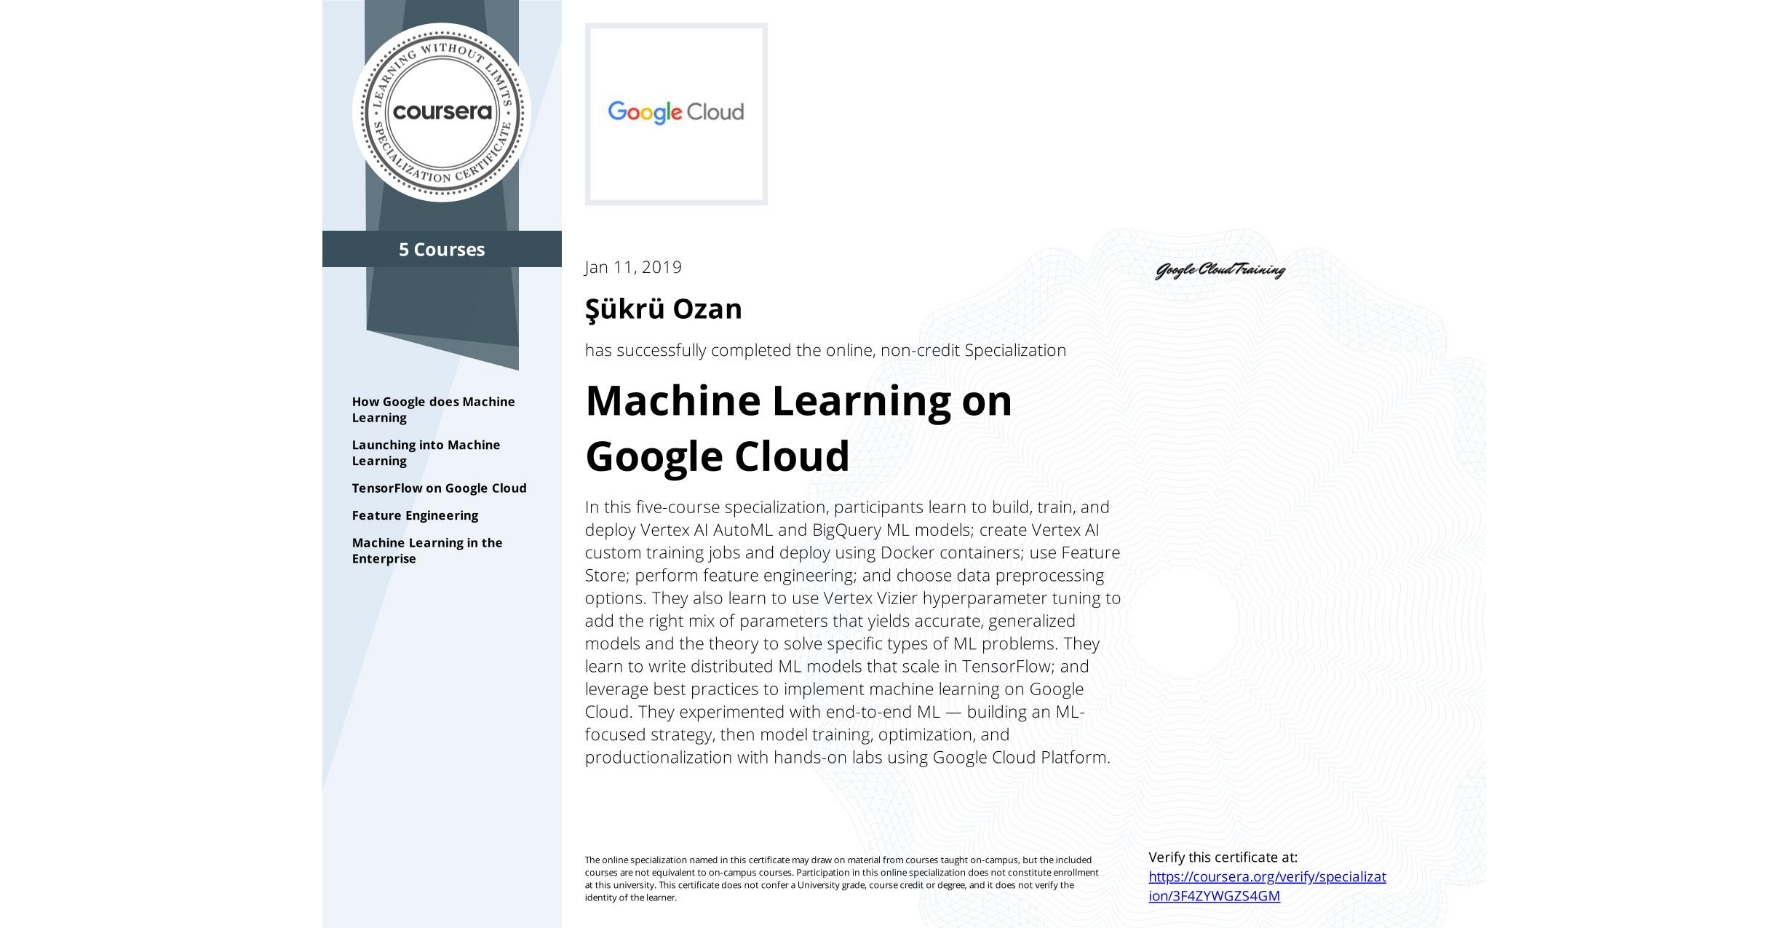 View certificate for Şükrü Ozan, Machine Learning with TensorFlow on Google Cloud, offered through Coursera. This five-course online specialization teaches course participants how to write distributed machine learning models that scale in Tensorflow, scale out the training of those models. and offer high-performance predictions. Also featured is the conversion of raw data to features in a way that allows ML to learn important characteristics from the data and bring human insight to bear on the problem. It also teaches how to incorporate the right mix of parameters that yields accurate, generalized models and knowledge of the theory to solve specific types of ML problems. Course participants experimented with end-to-end ML, starting from building an ML-focused strategy and progressing into model training, optimization, and productionalization with hands-on labs using Google Cloud Platform.